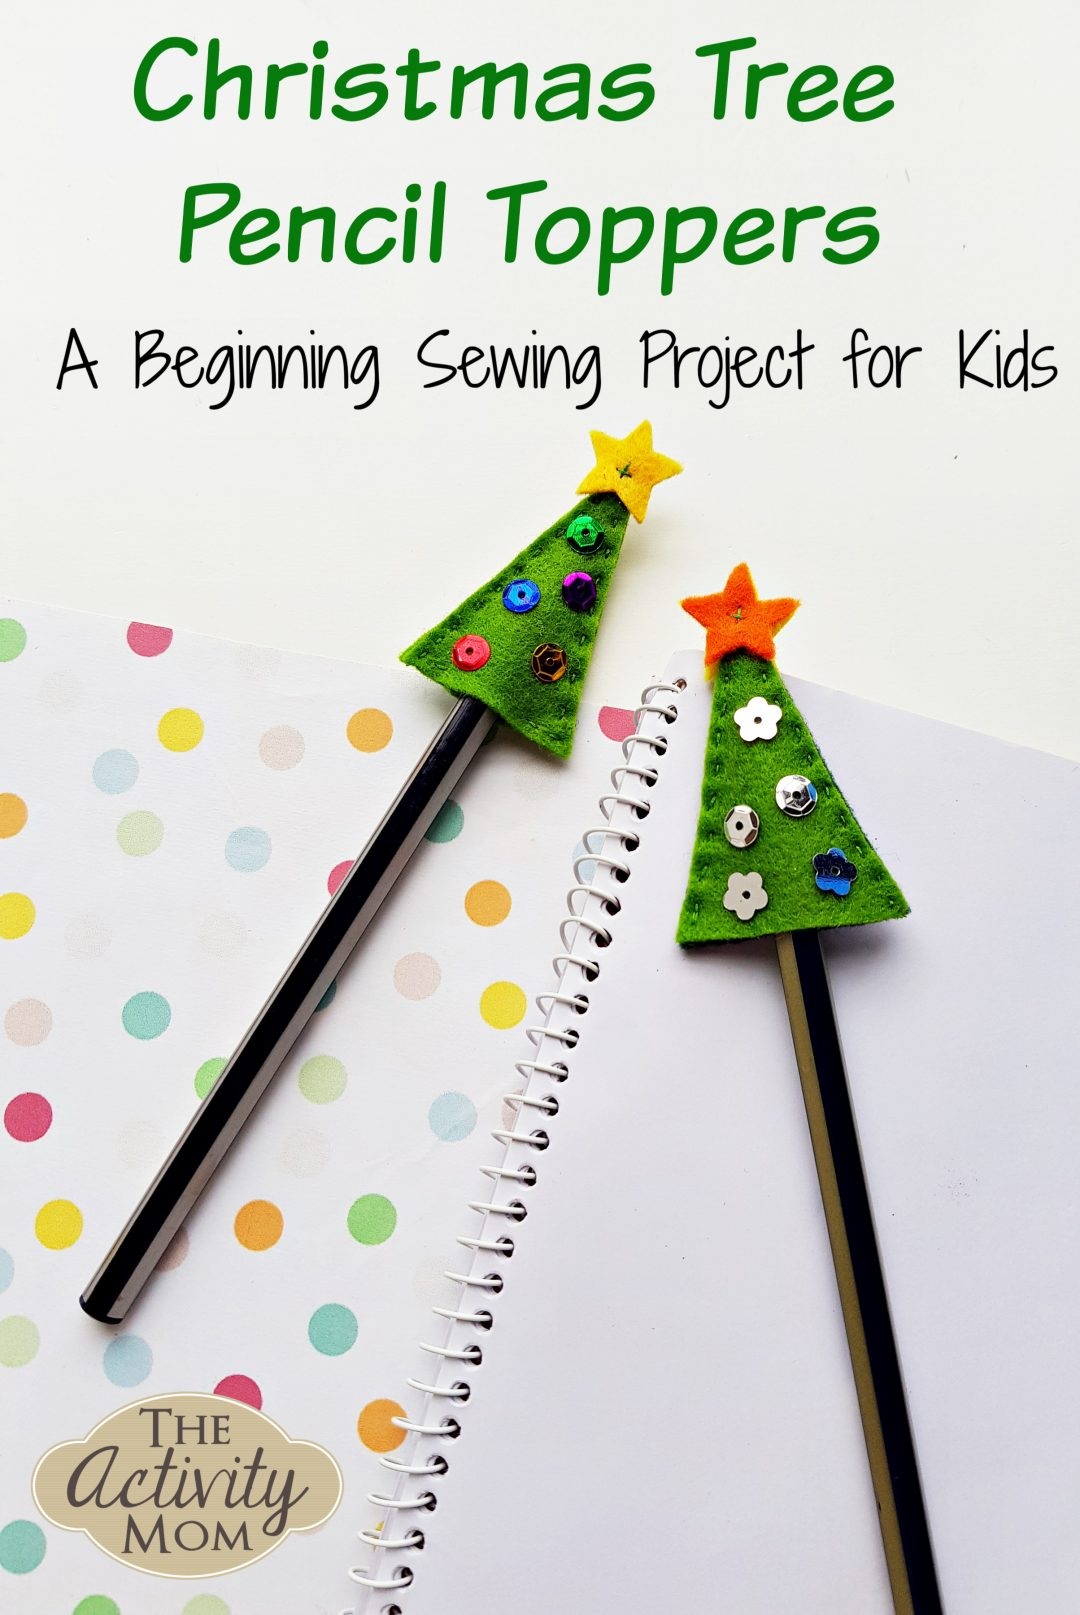 Beginning Sewing Project for Kids